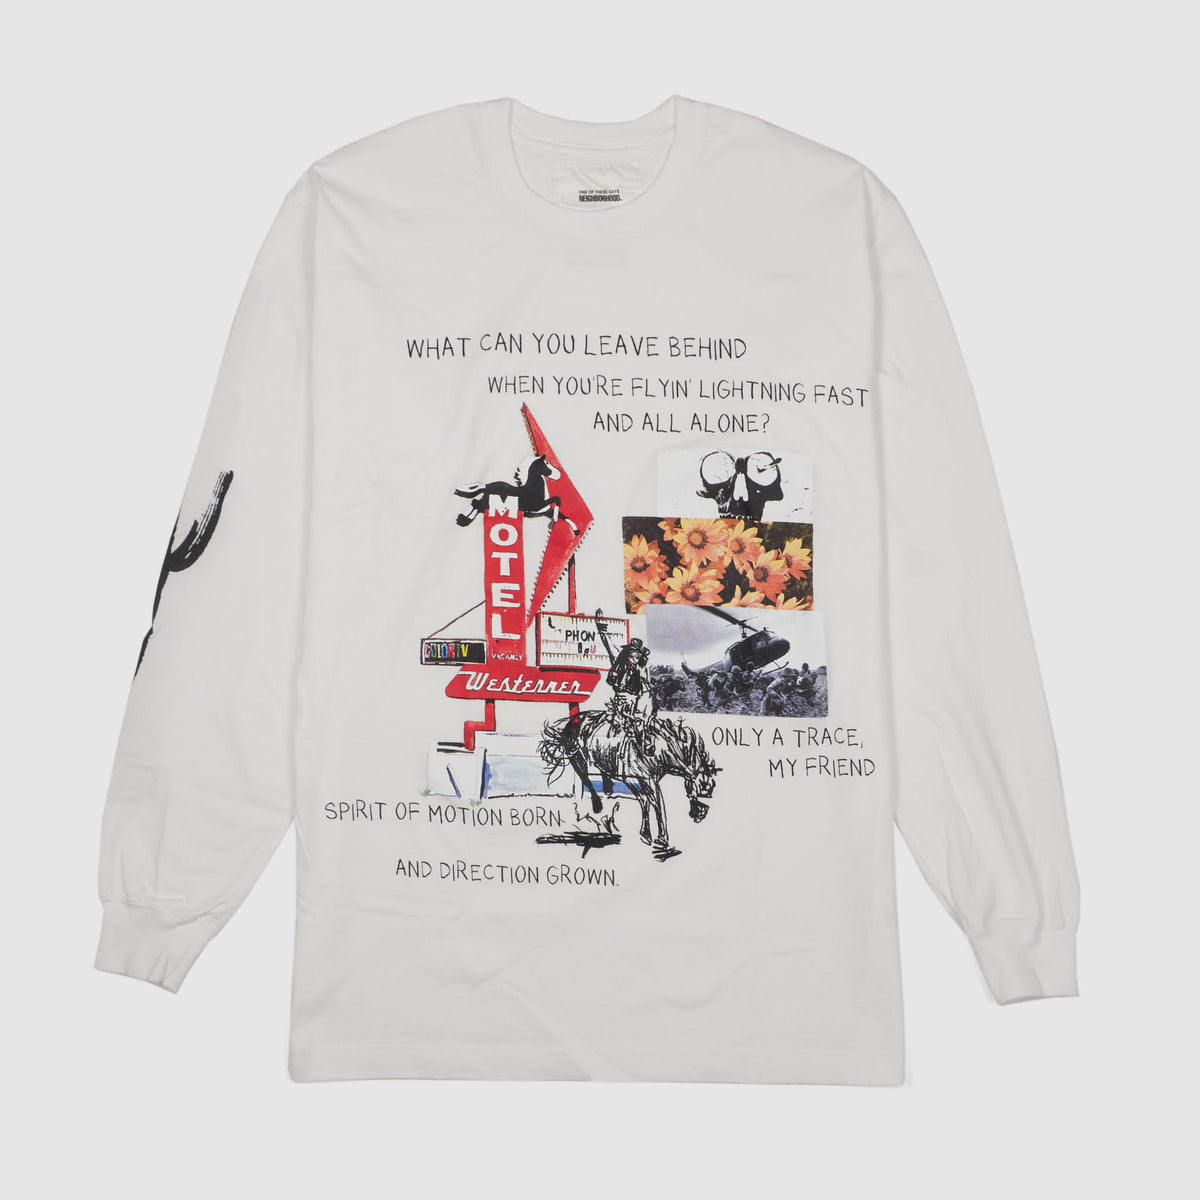 Neighborhood x ONE OD THESE DAYS by Matt McCormick Crew Neck Long Sleeves T- Shirt